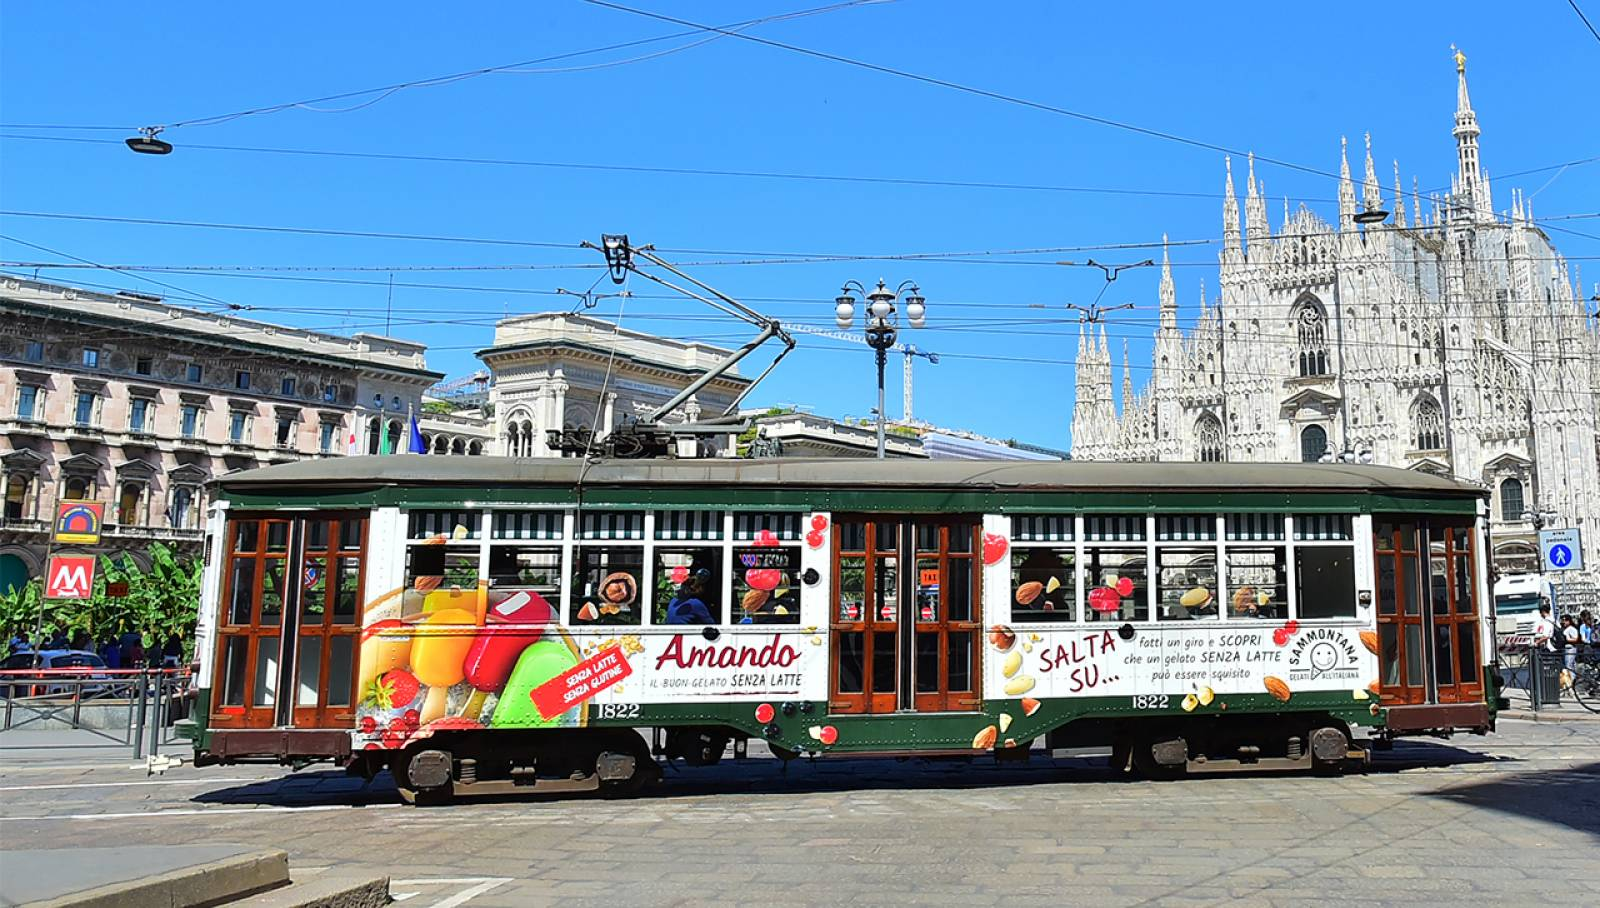 OOH IGPDecaux Creative Solutions Tram Speciale per Sammontana a Milano